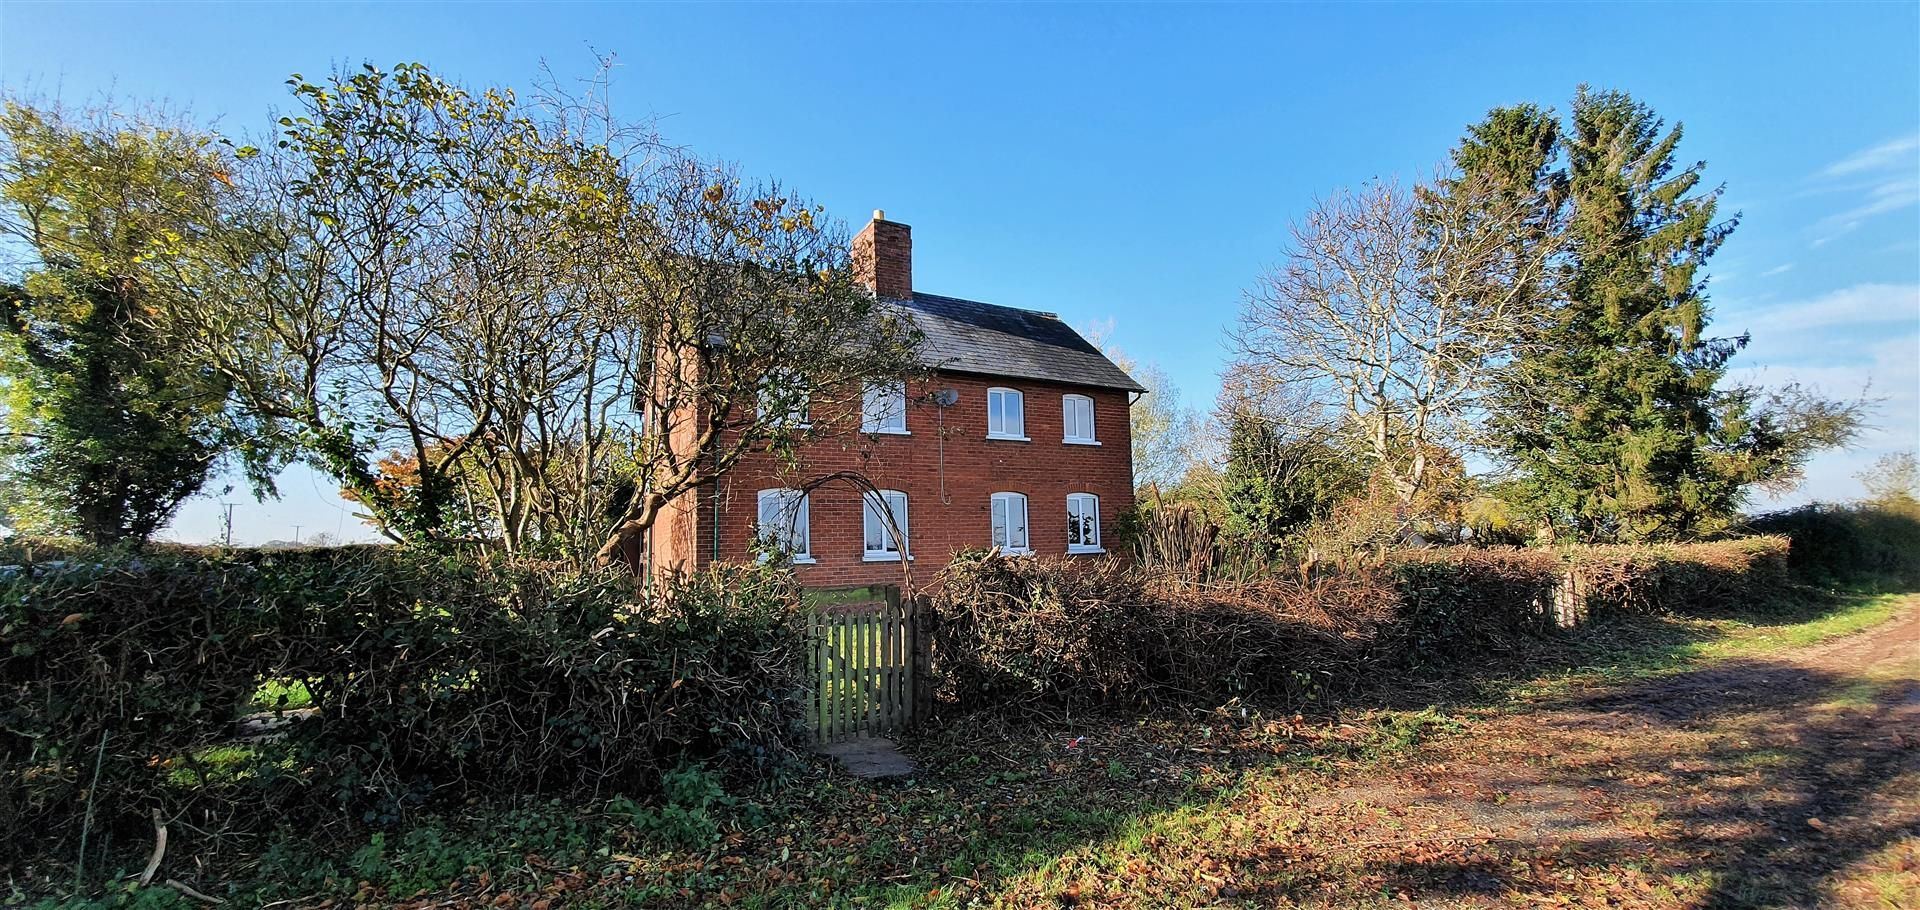 4 bed house to rent in Breinton  - Property Image 2